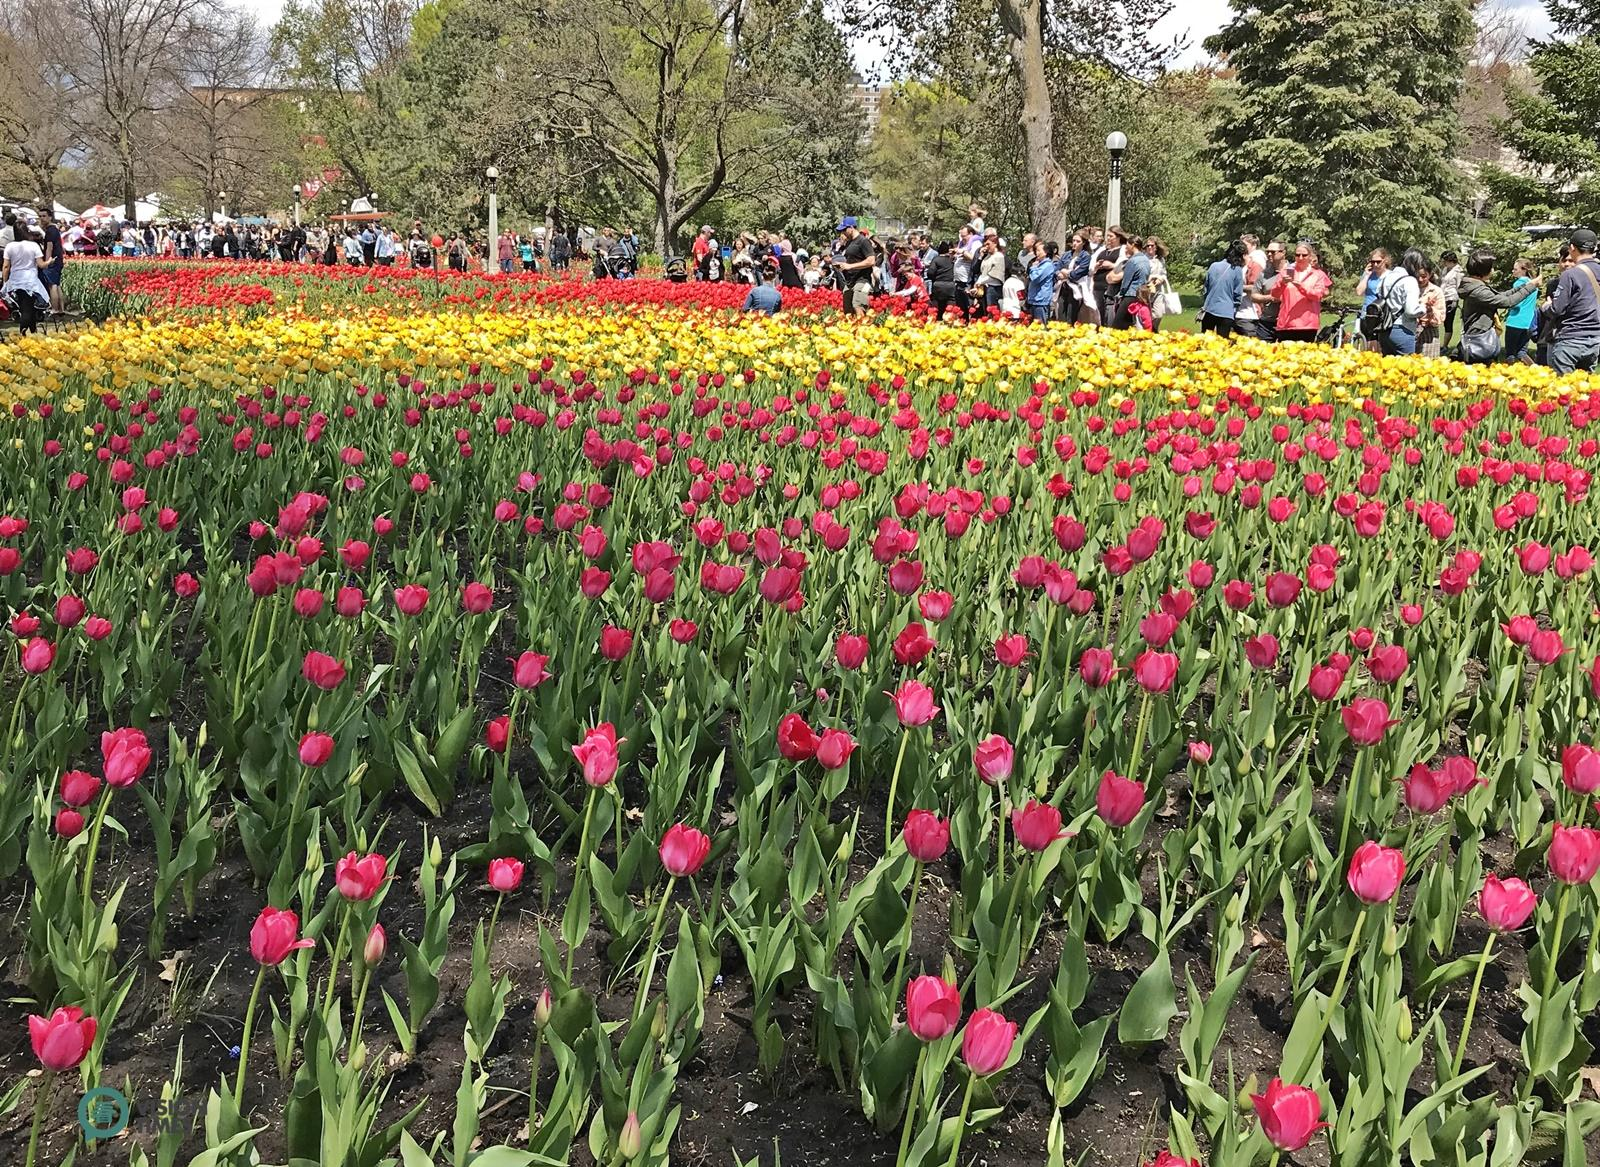 The Canadian Tulip Festival held at the Commissioners Park in May. (Image: Billy Shyu / Vision Times)